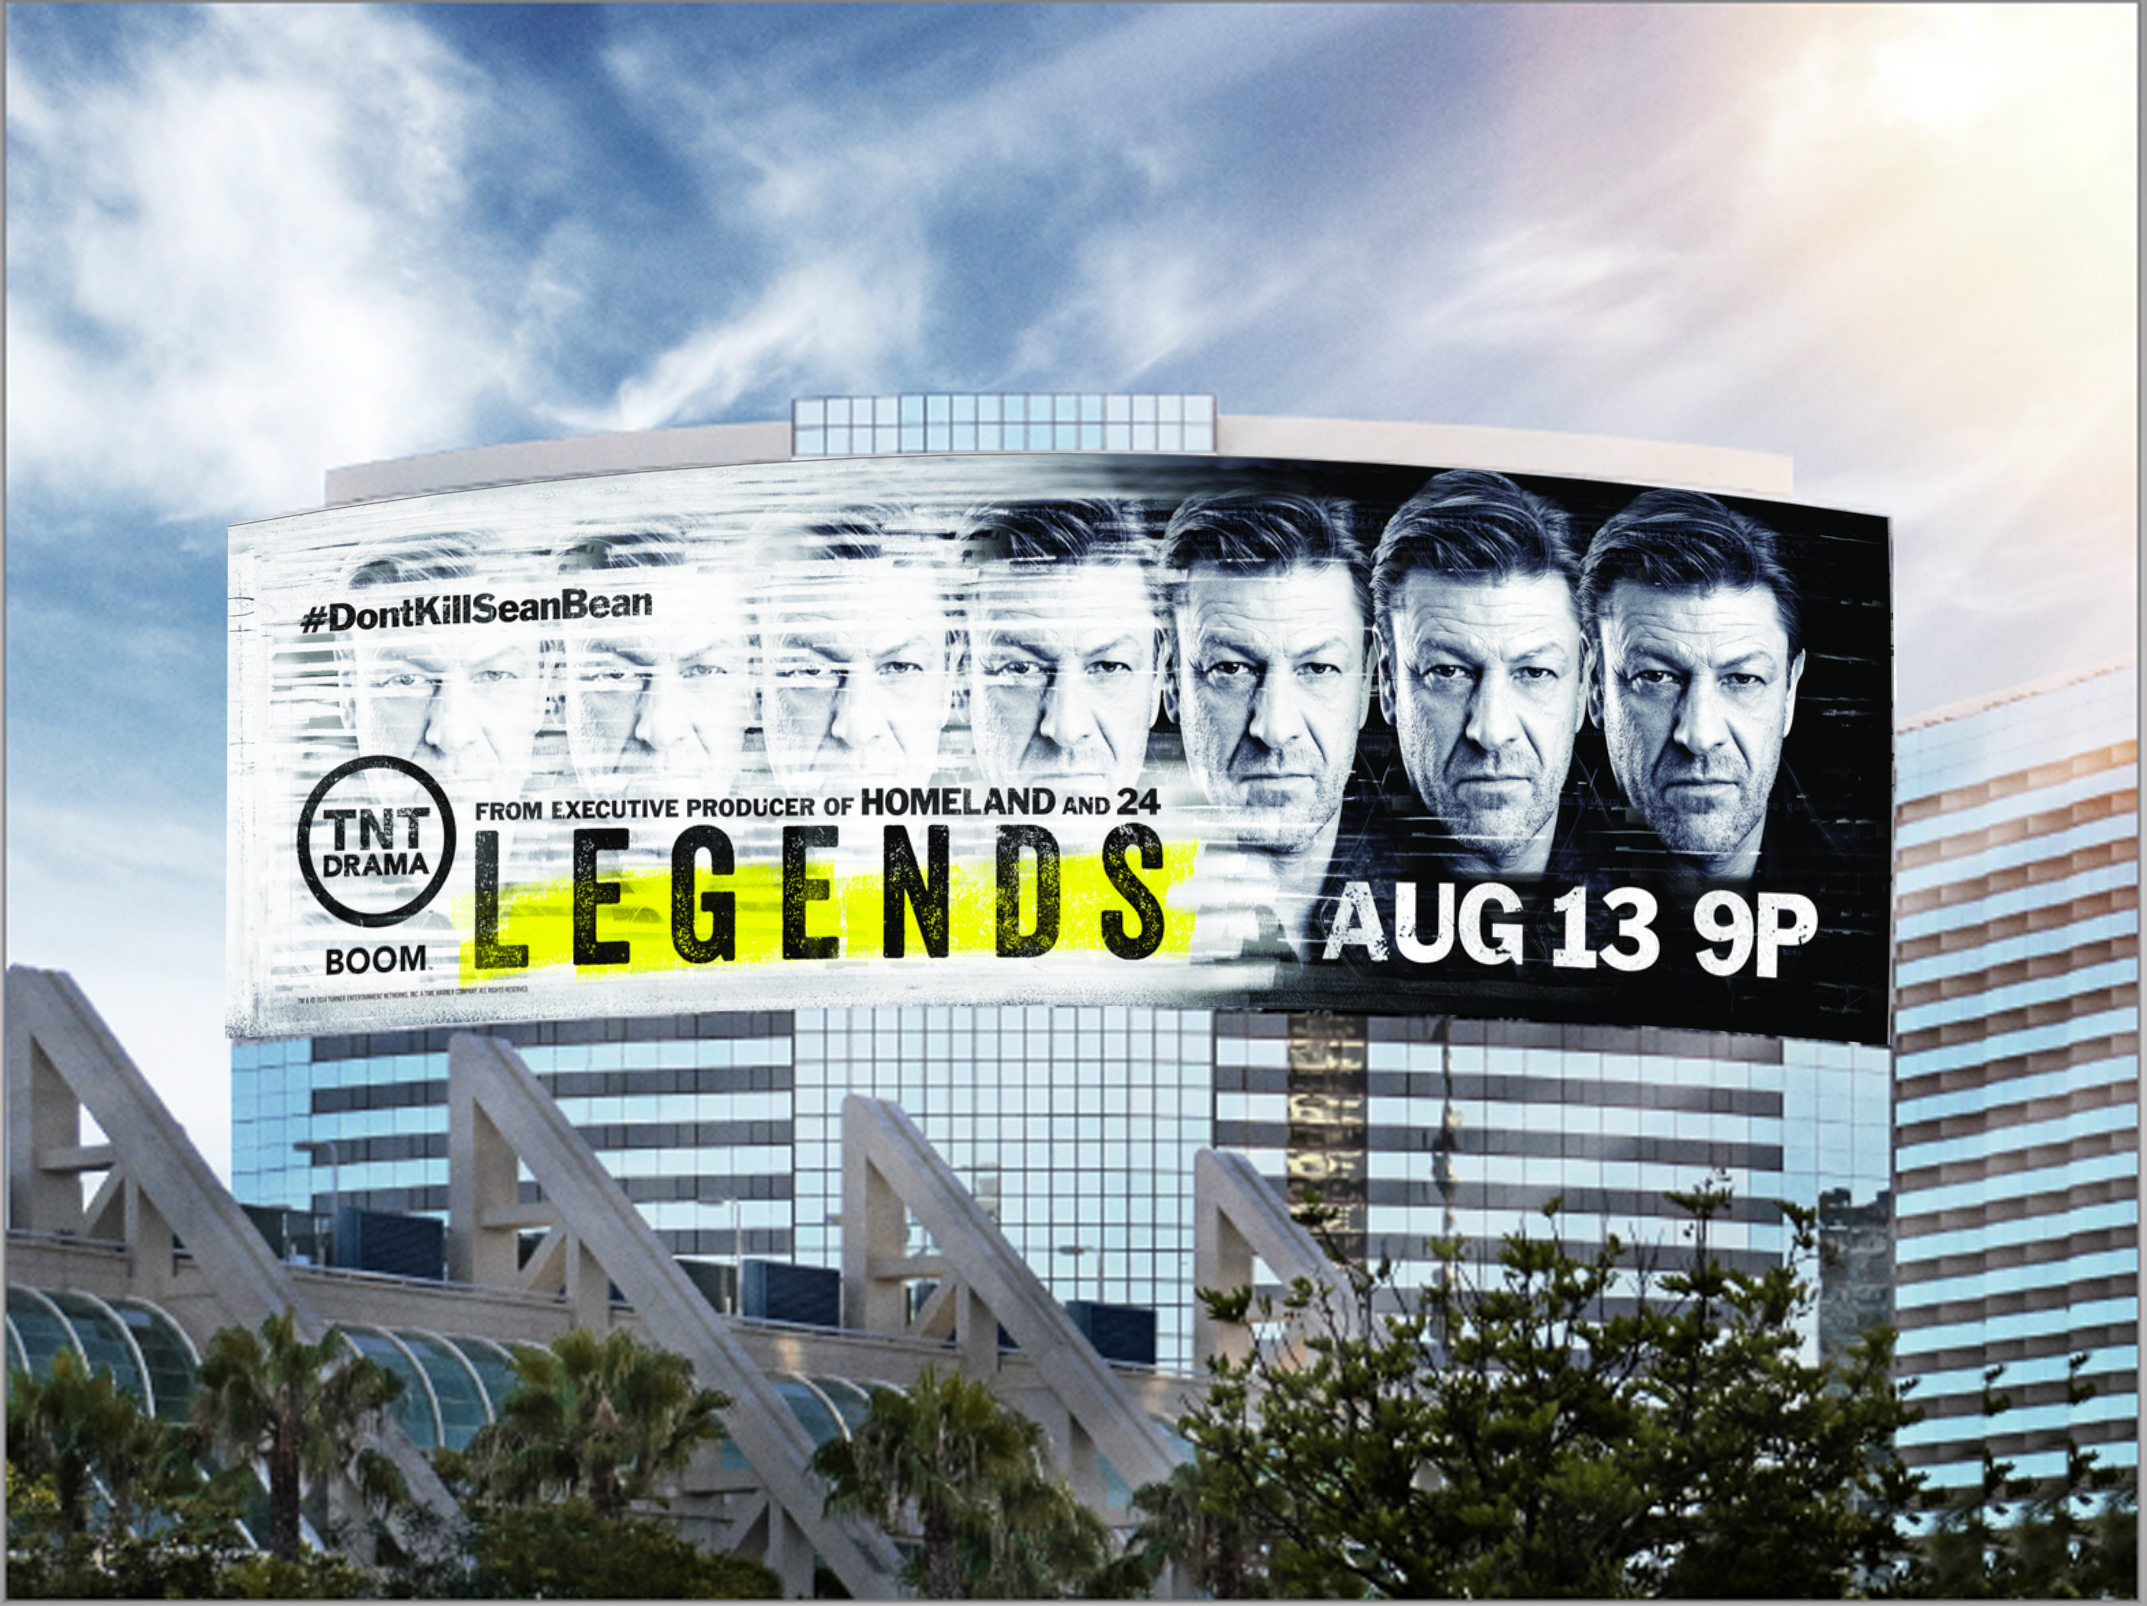 TNT's Legends Takes Over the Skies at SDCC 2014